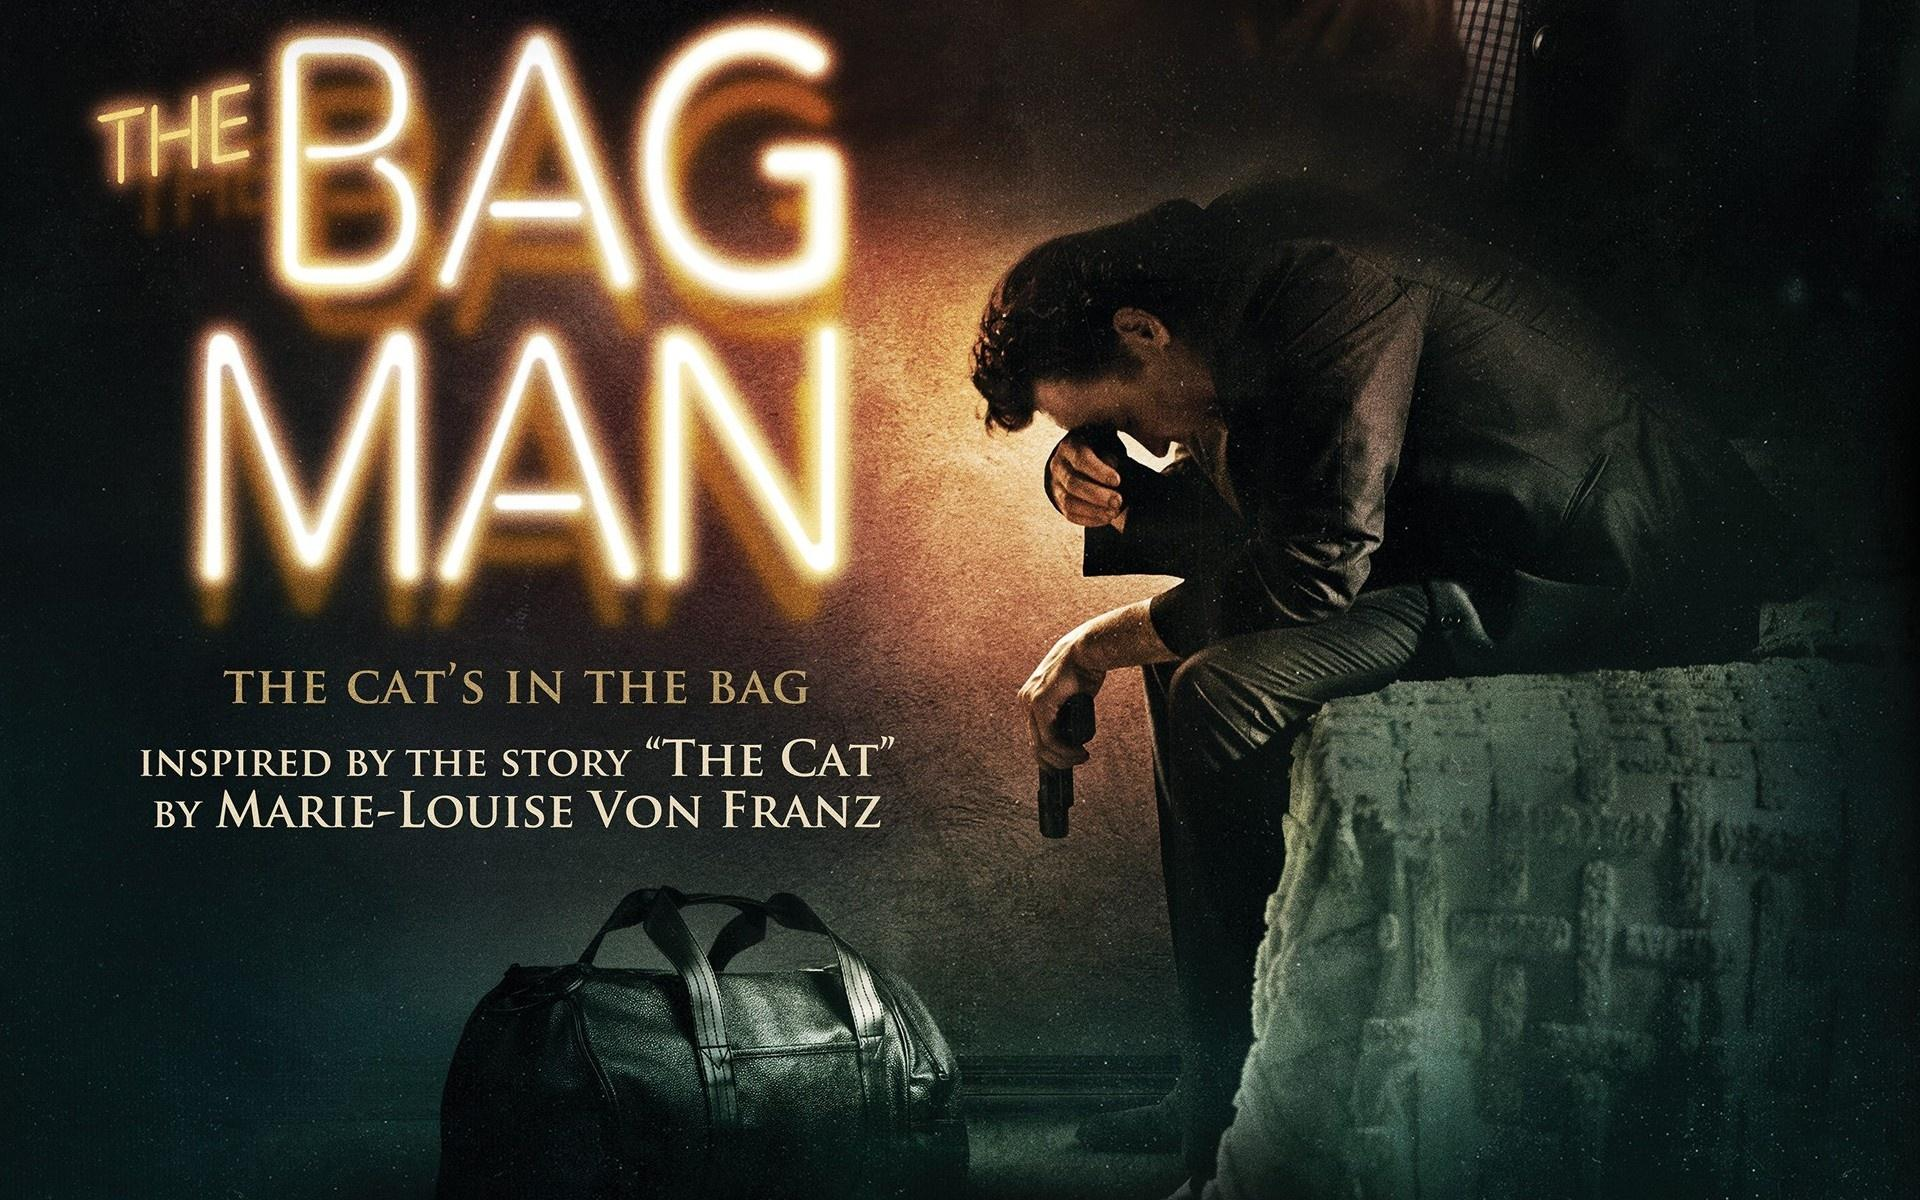 Why I hated THE BAG MAN | Calm sea raging undertow movie reviews